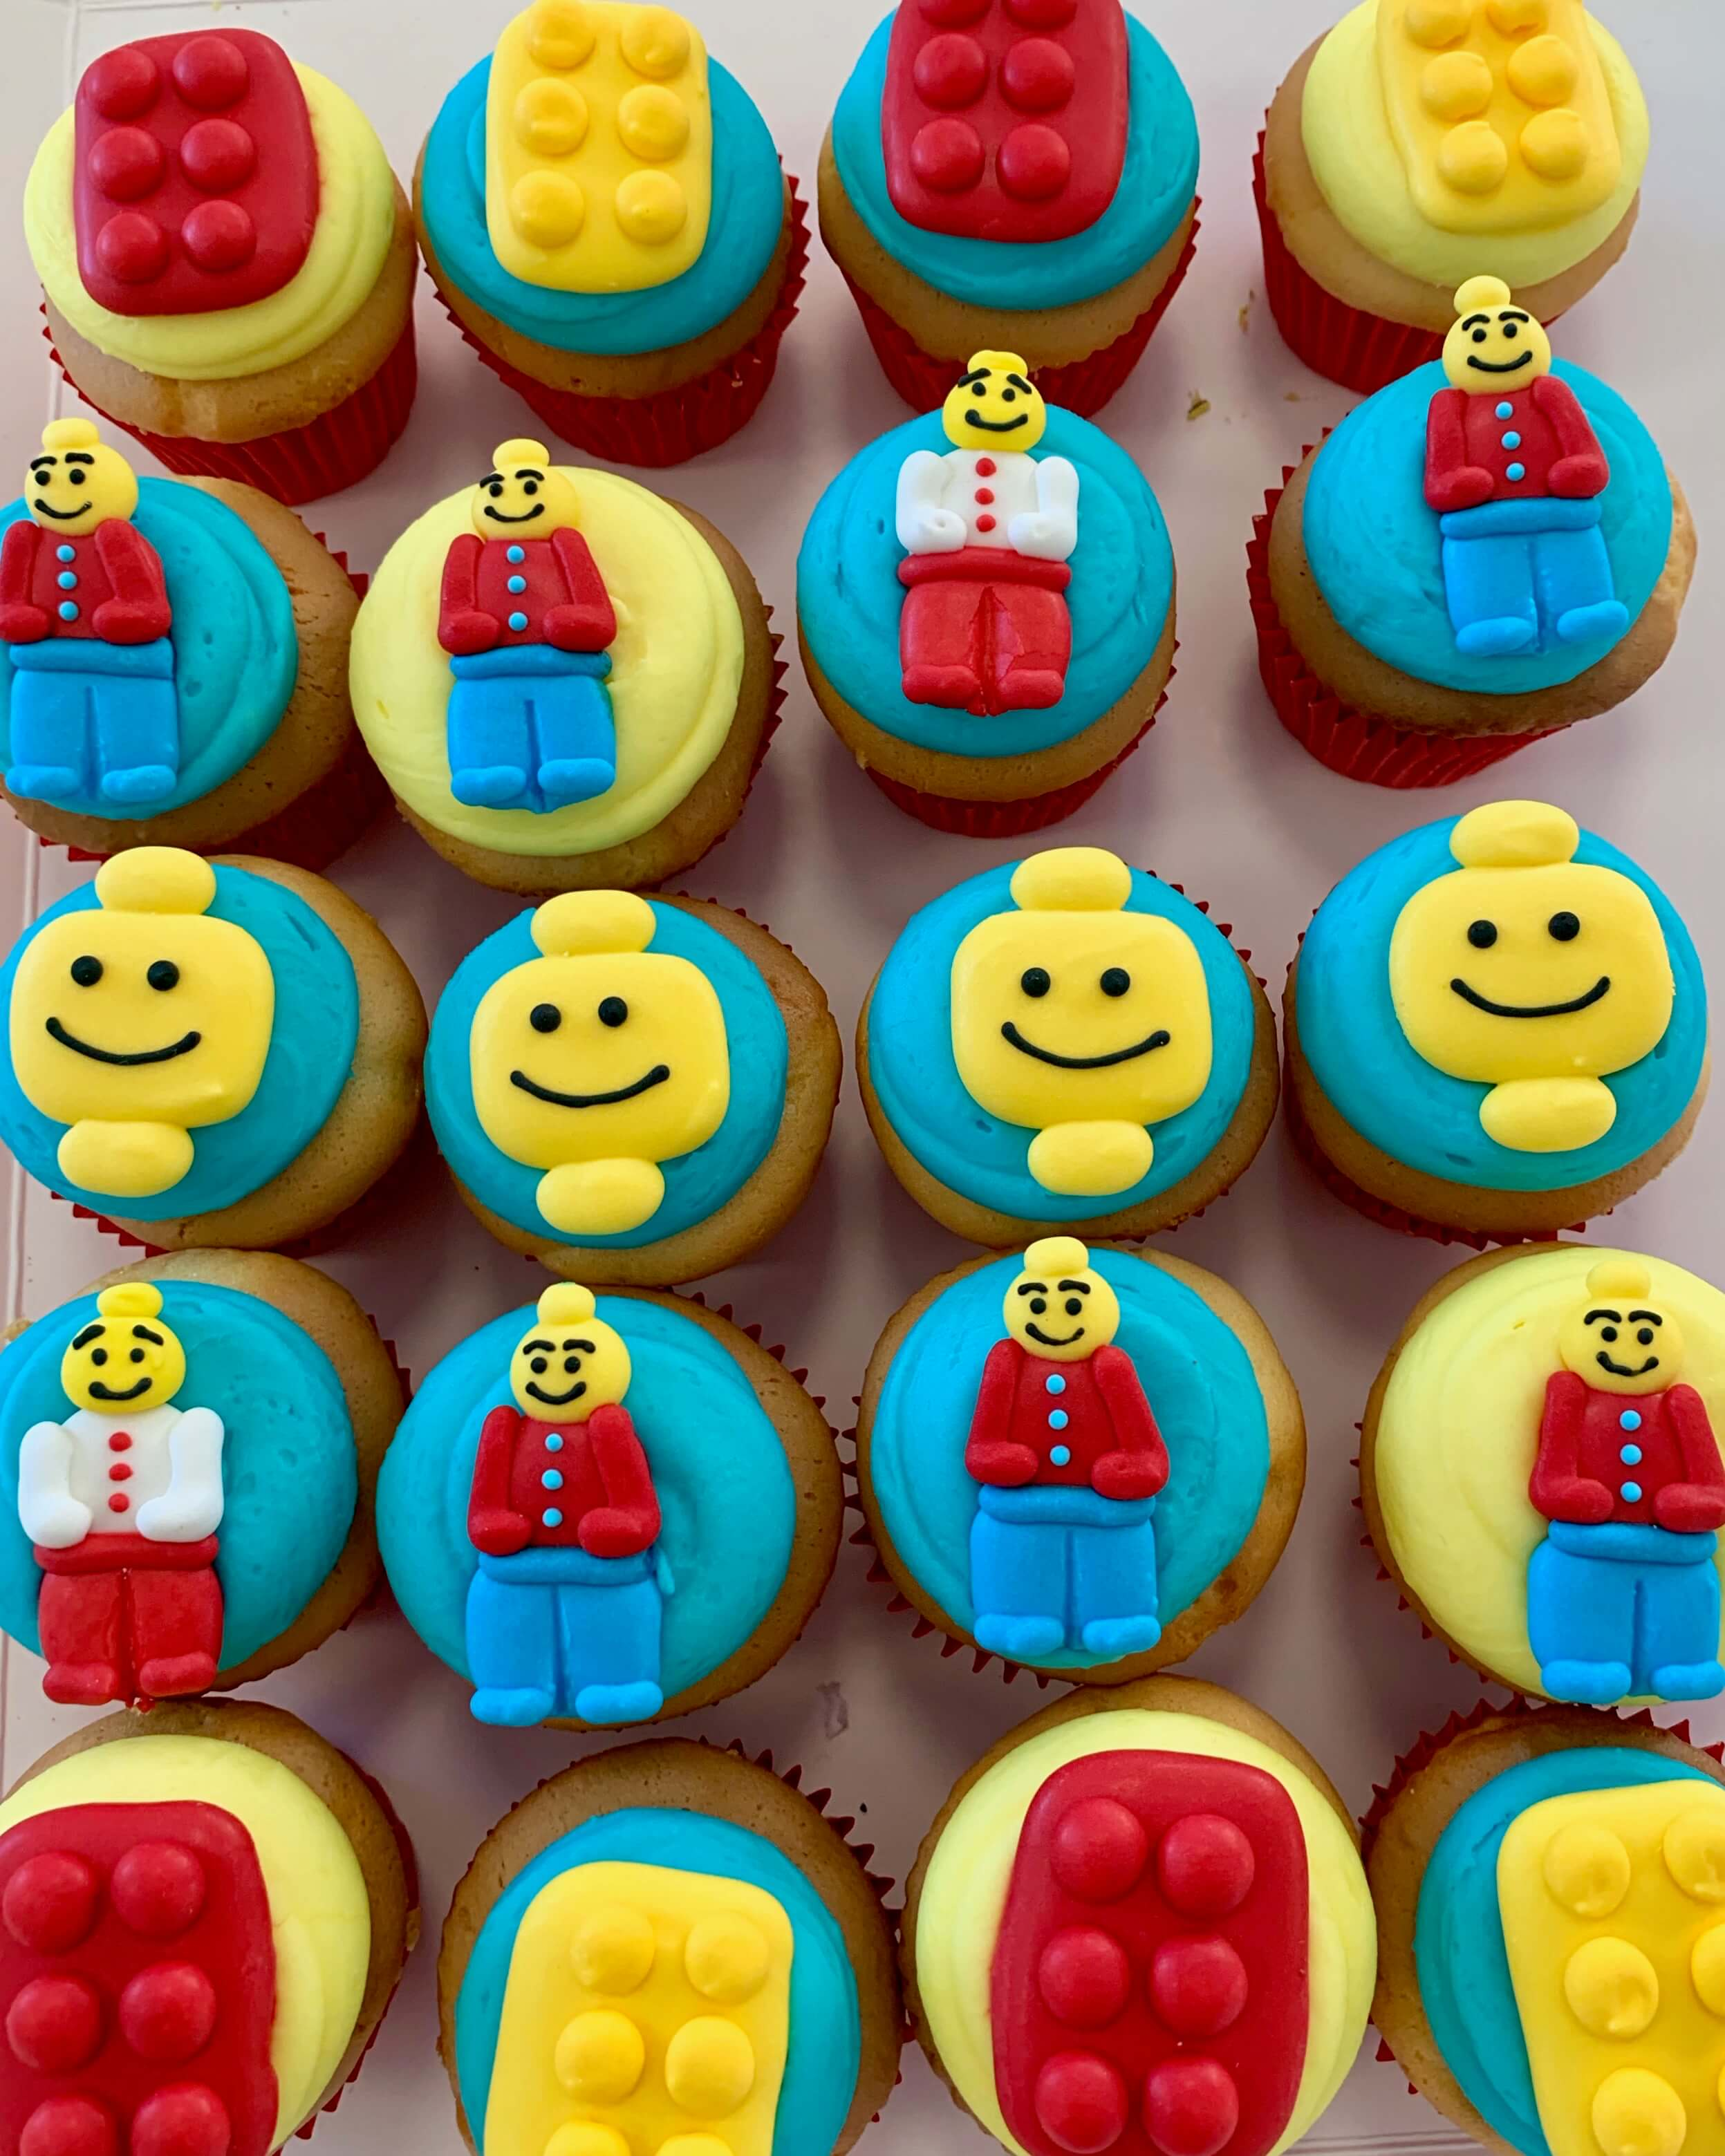 BRICKS 4 KIDZ | Kids Brthday Party Venue Food | LEGO Cupcakes 2